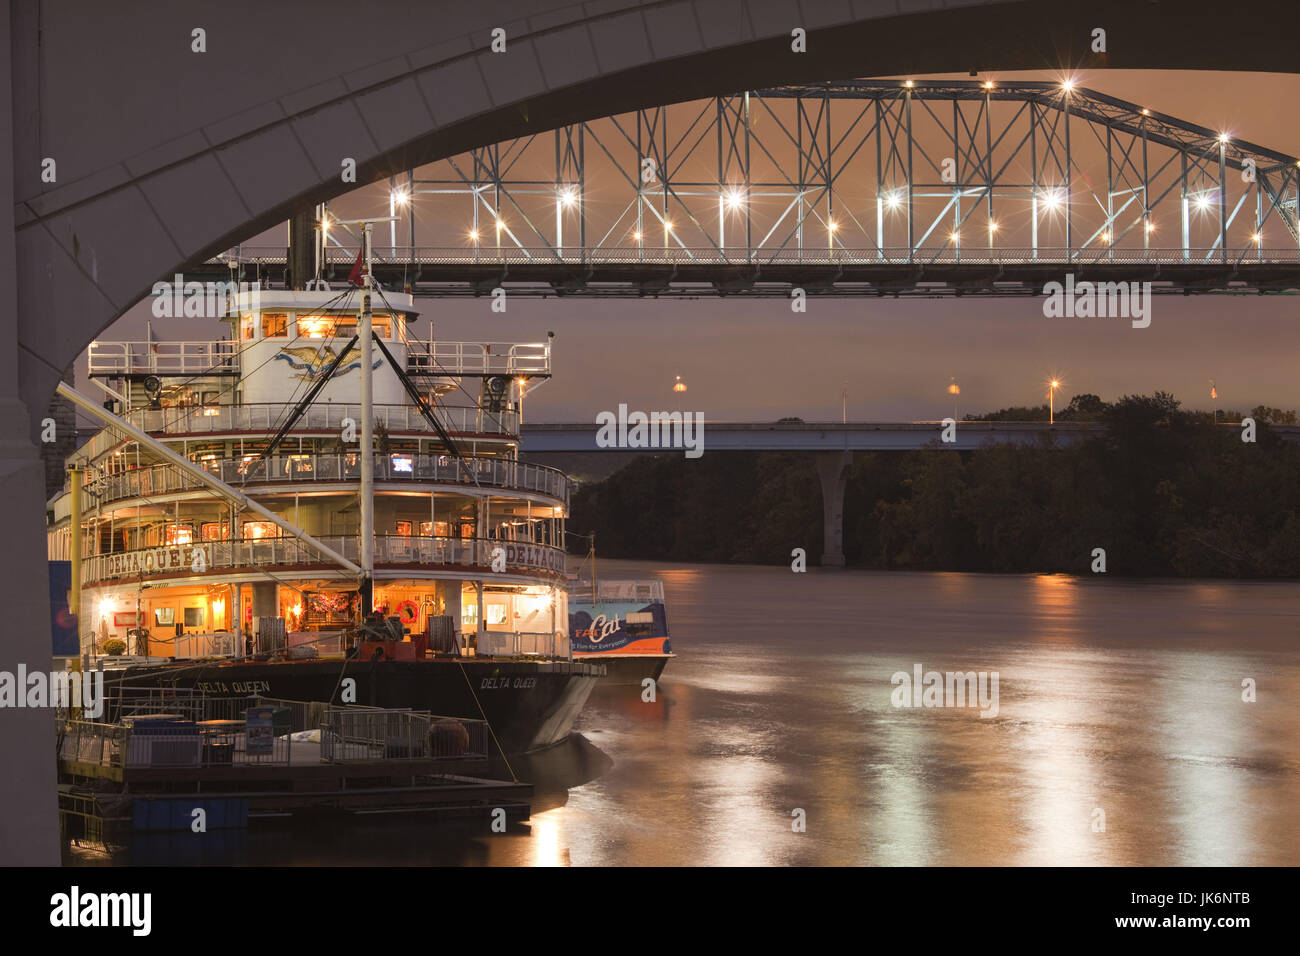 USA, Tennessee, Chattanooga, Delta Queen riverboat and Tennessee River bridges, dusk - Stock Image